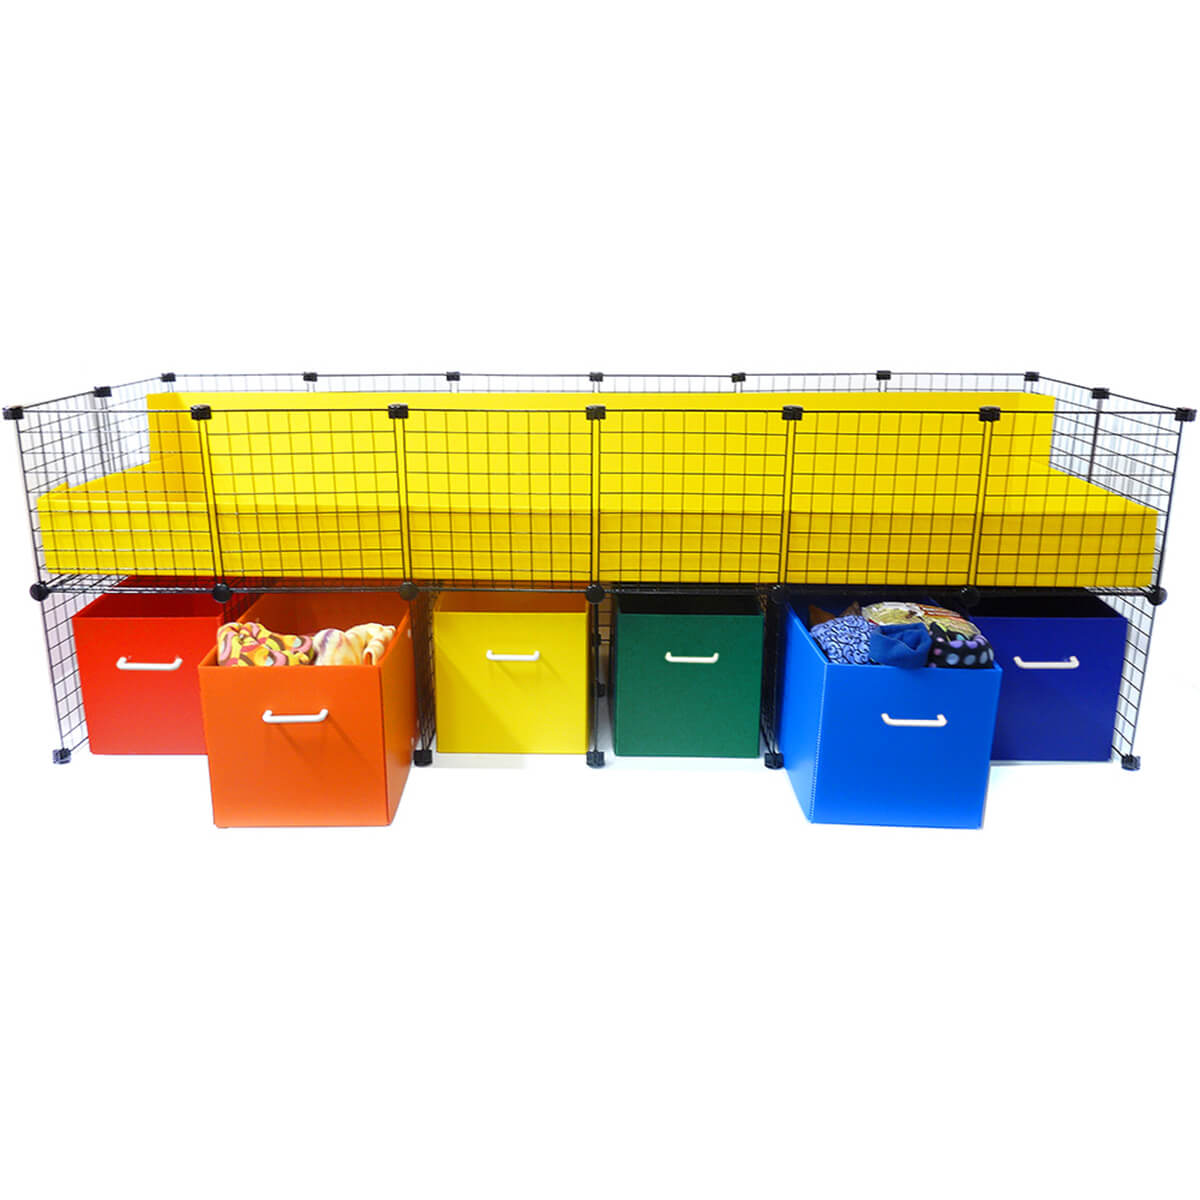 Jumbo Cubby with bins out